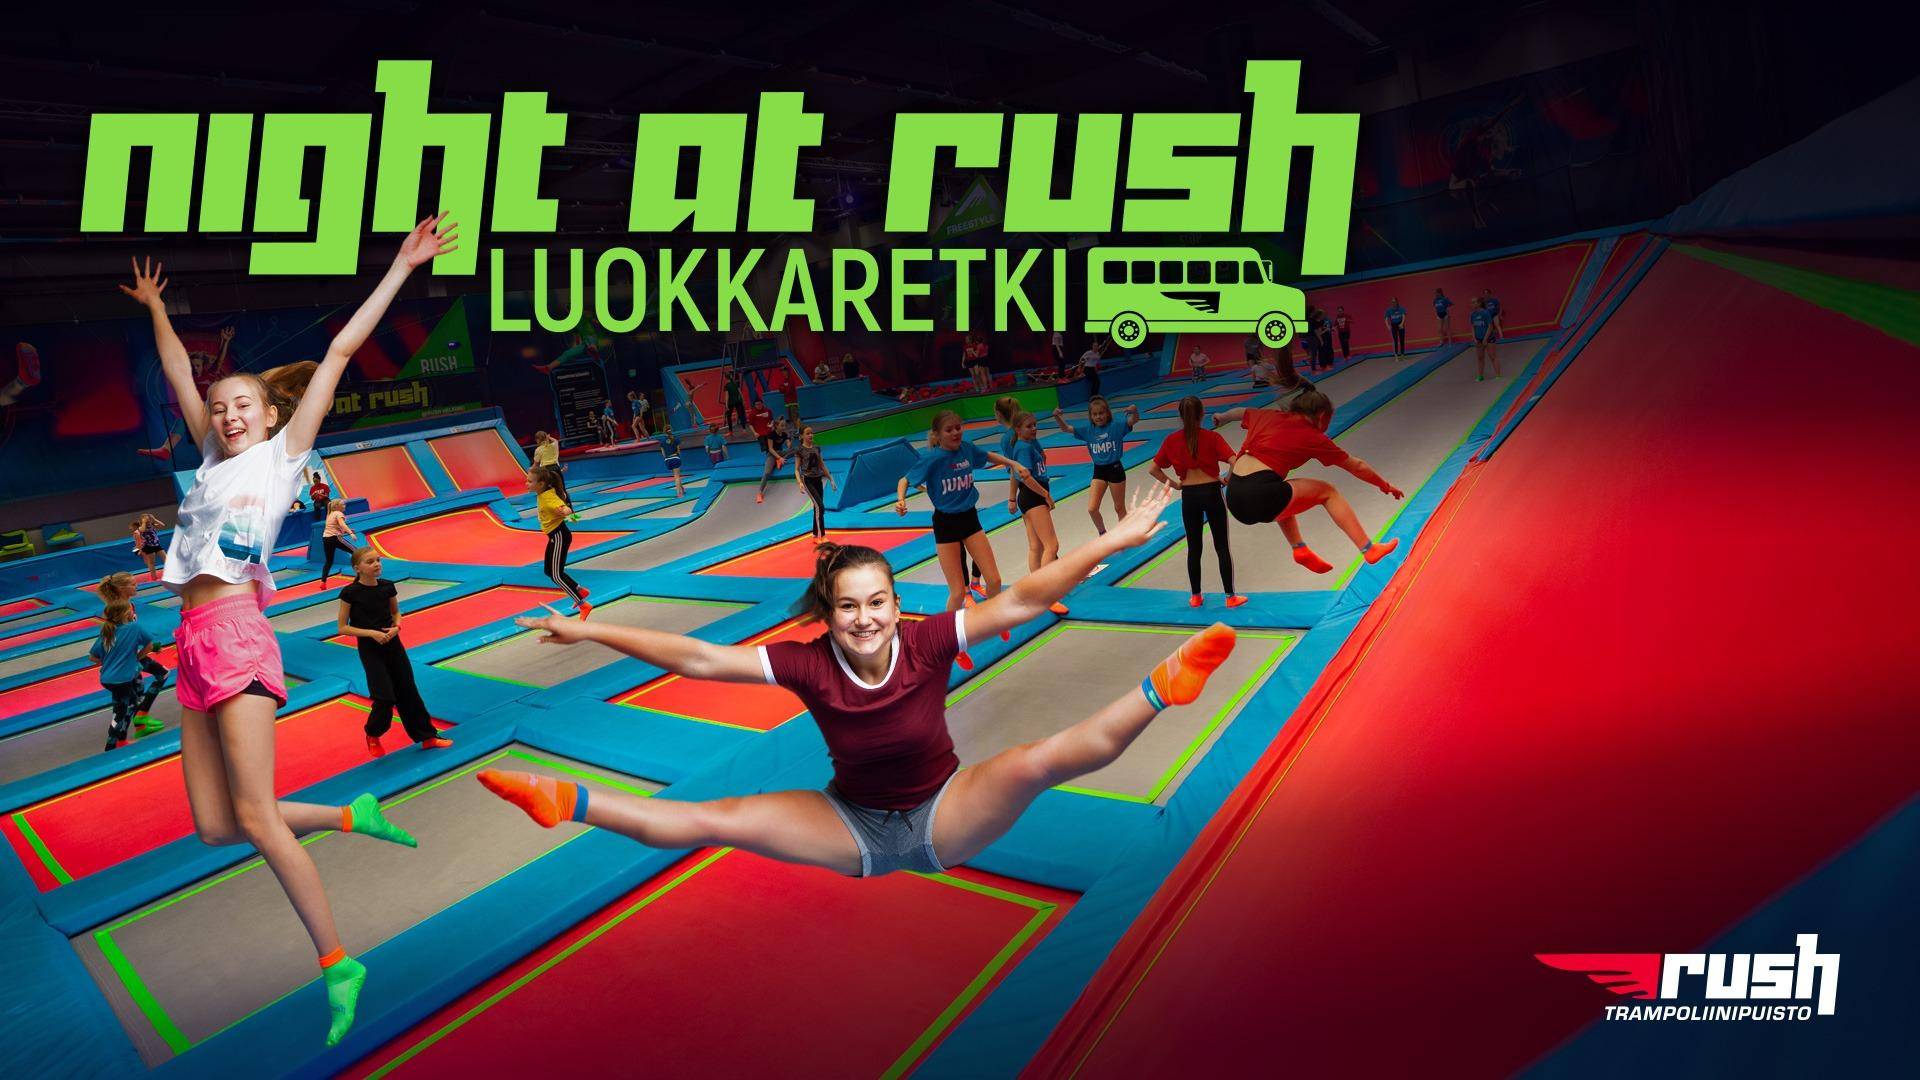 Night at Rush -luokkaretki